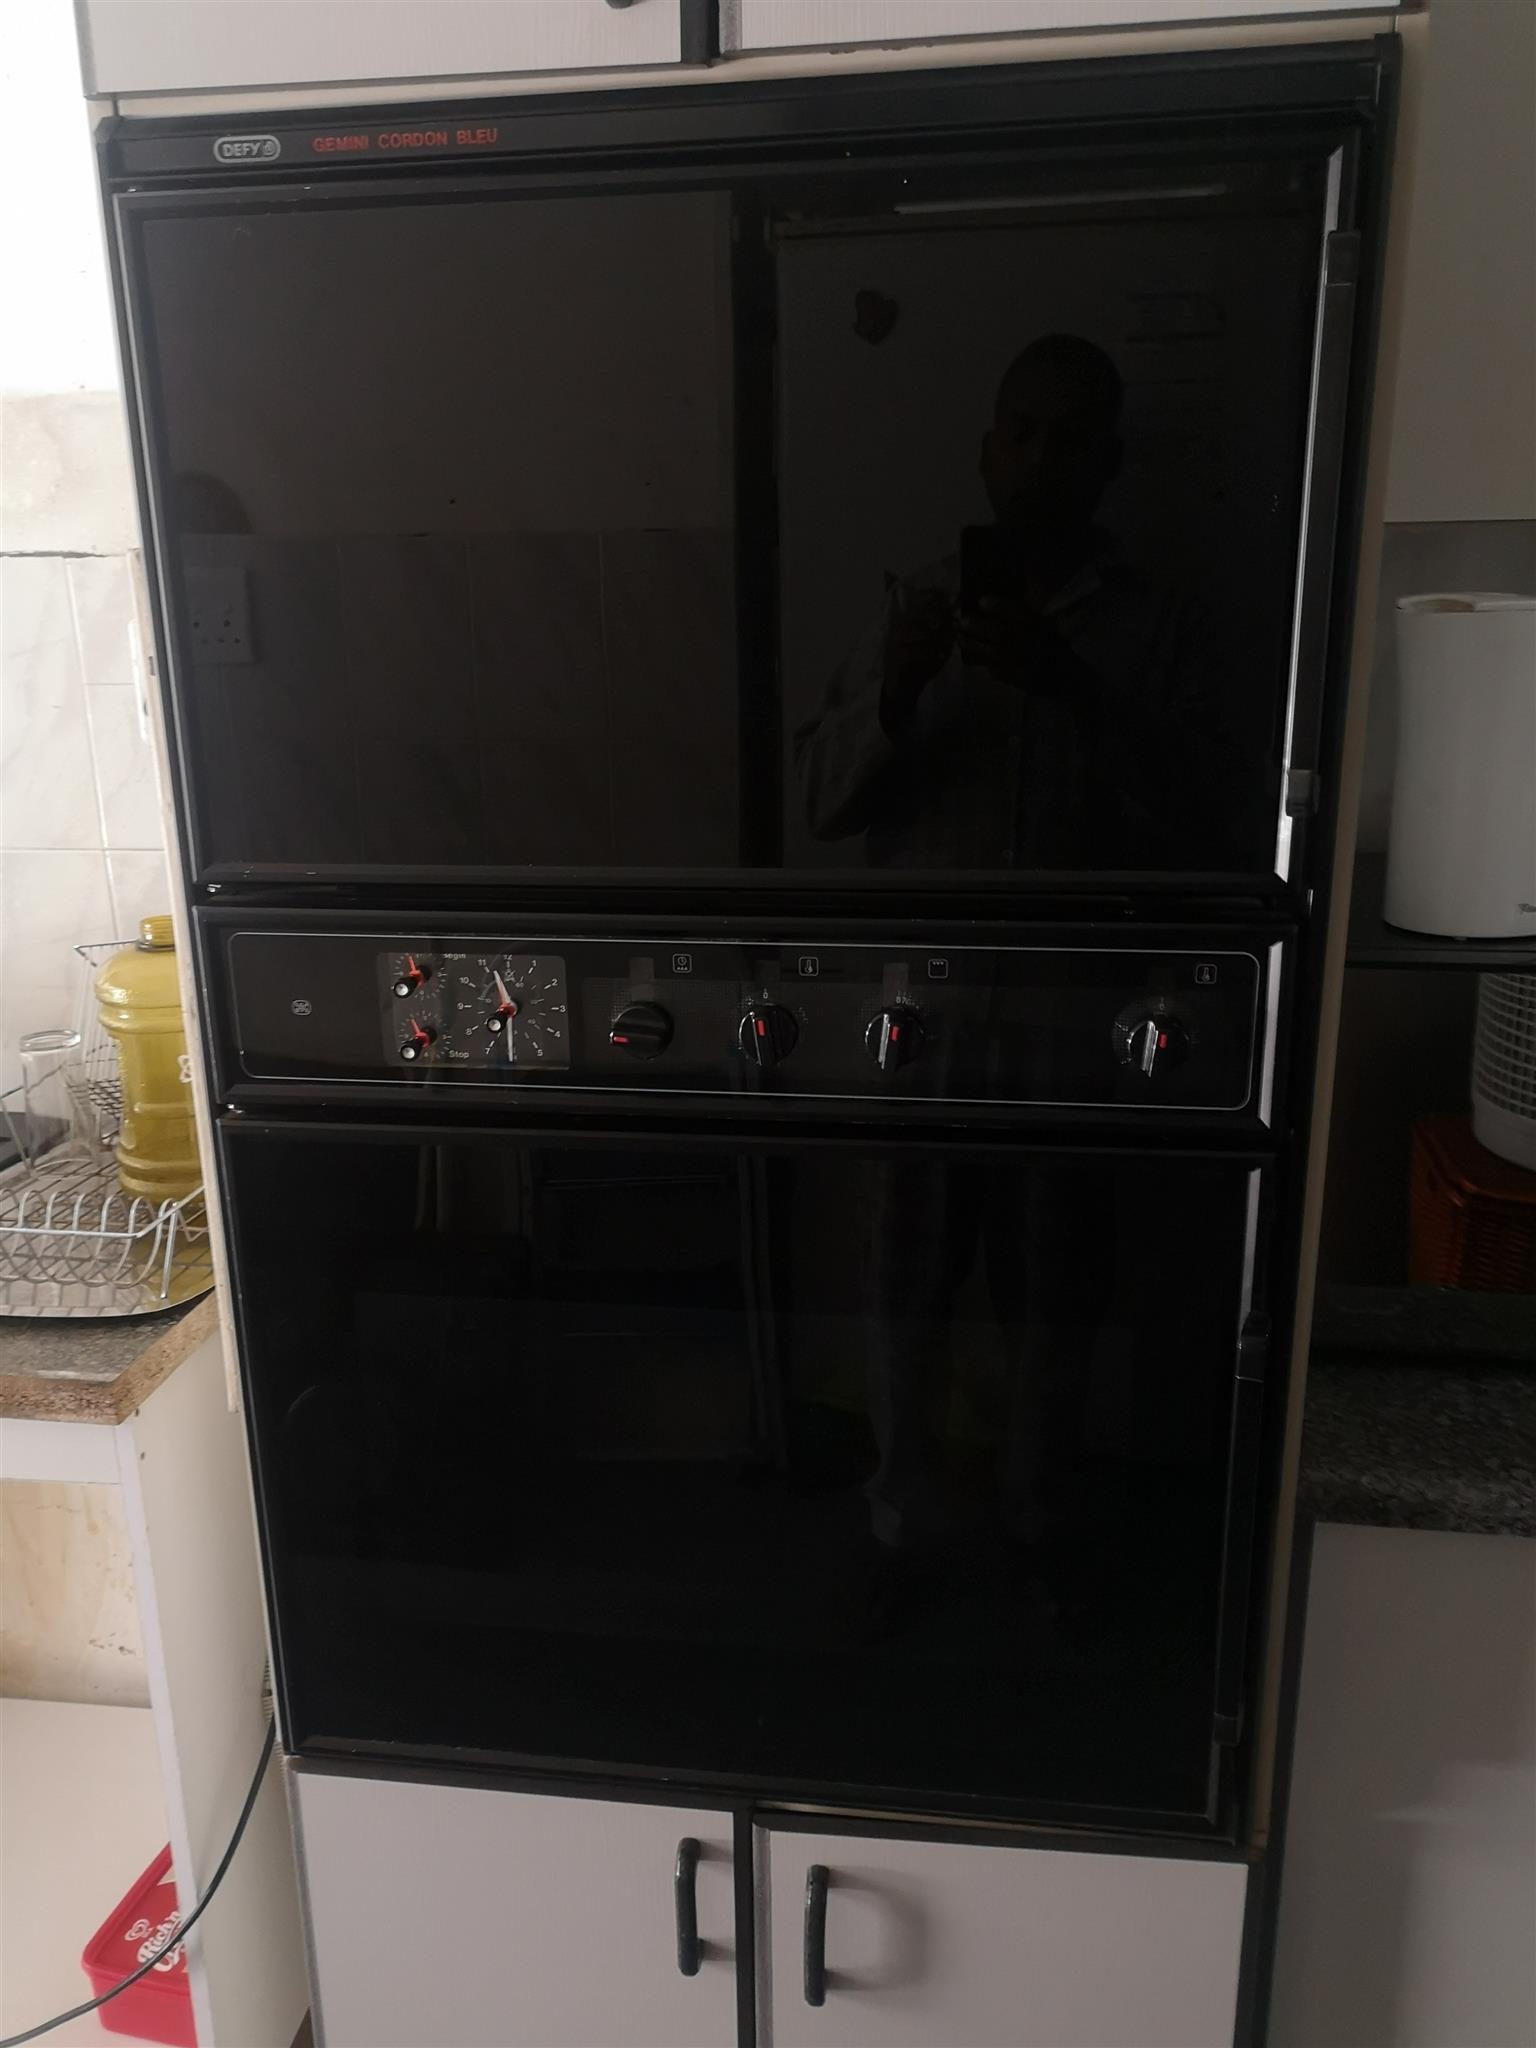 Defy Gemini Stove /High level Oven and Extractor